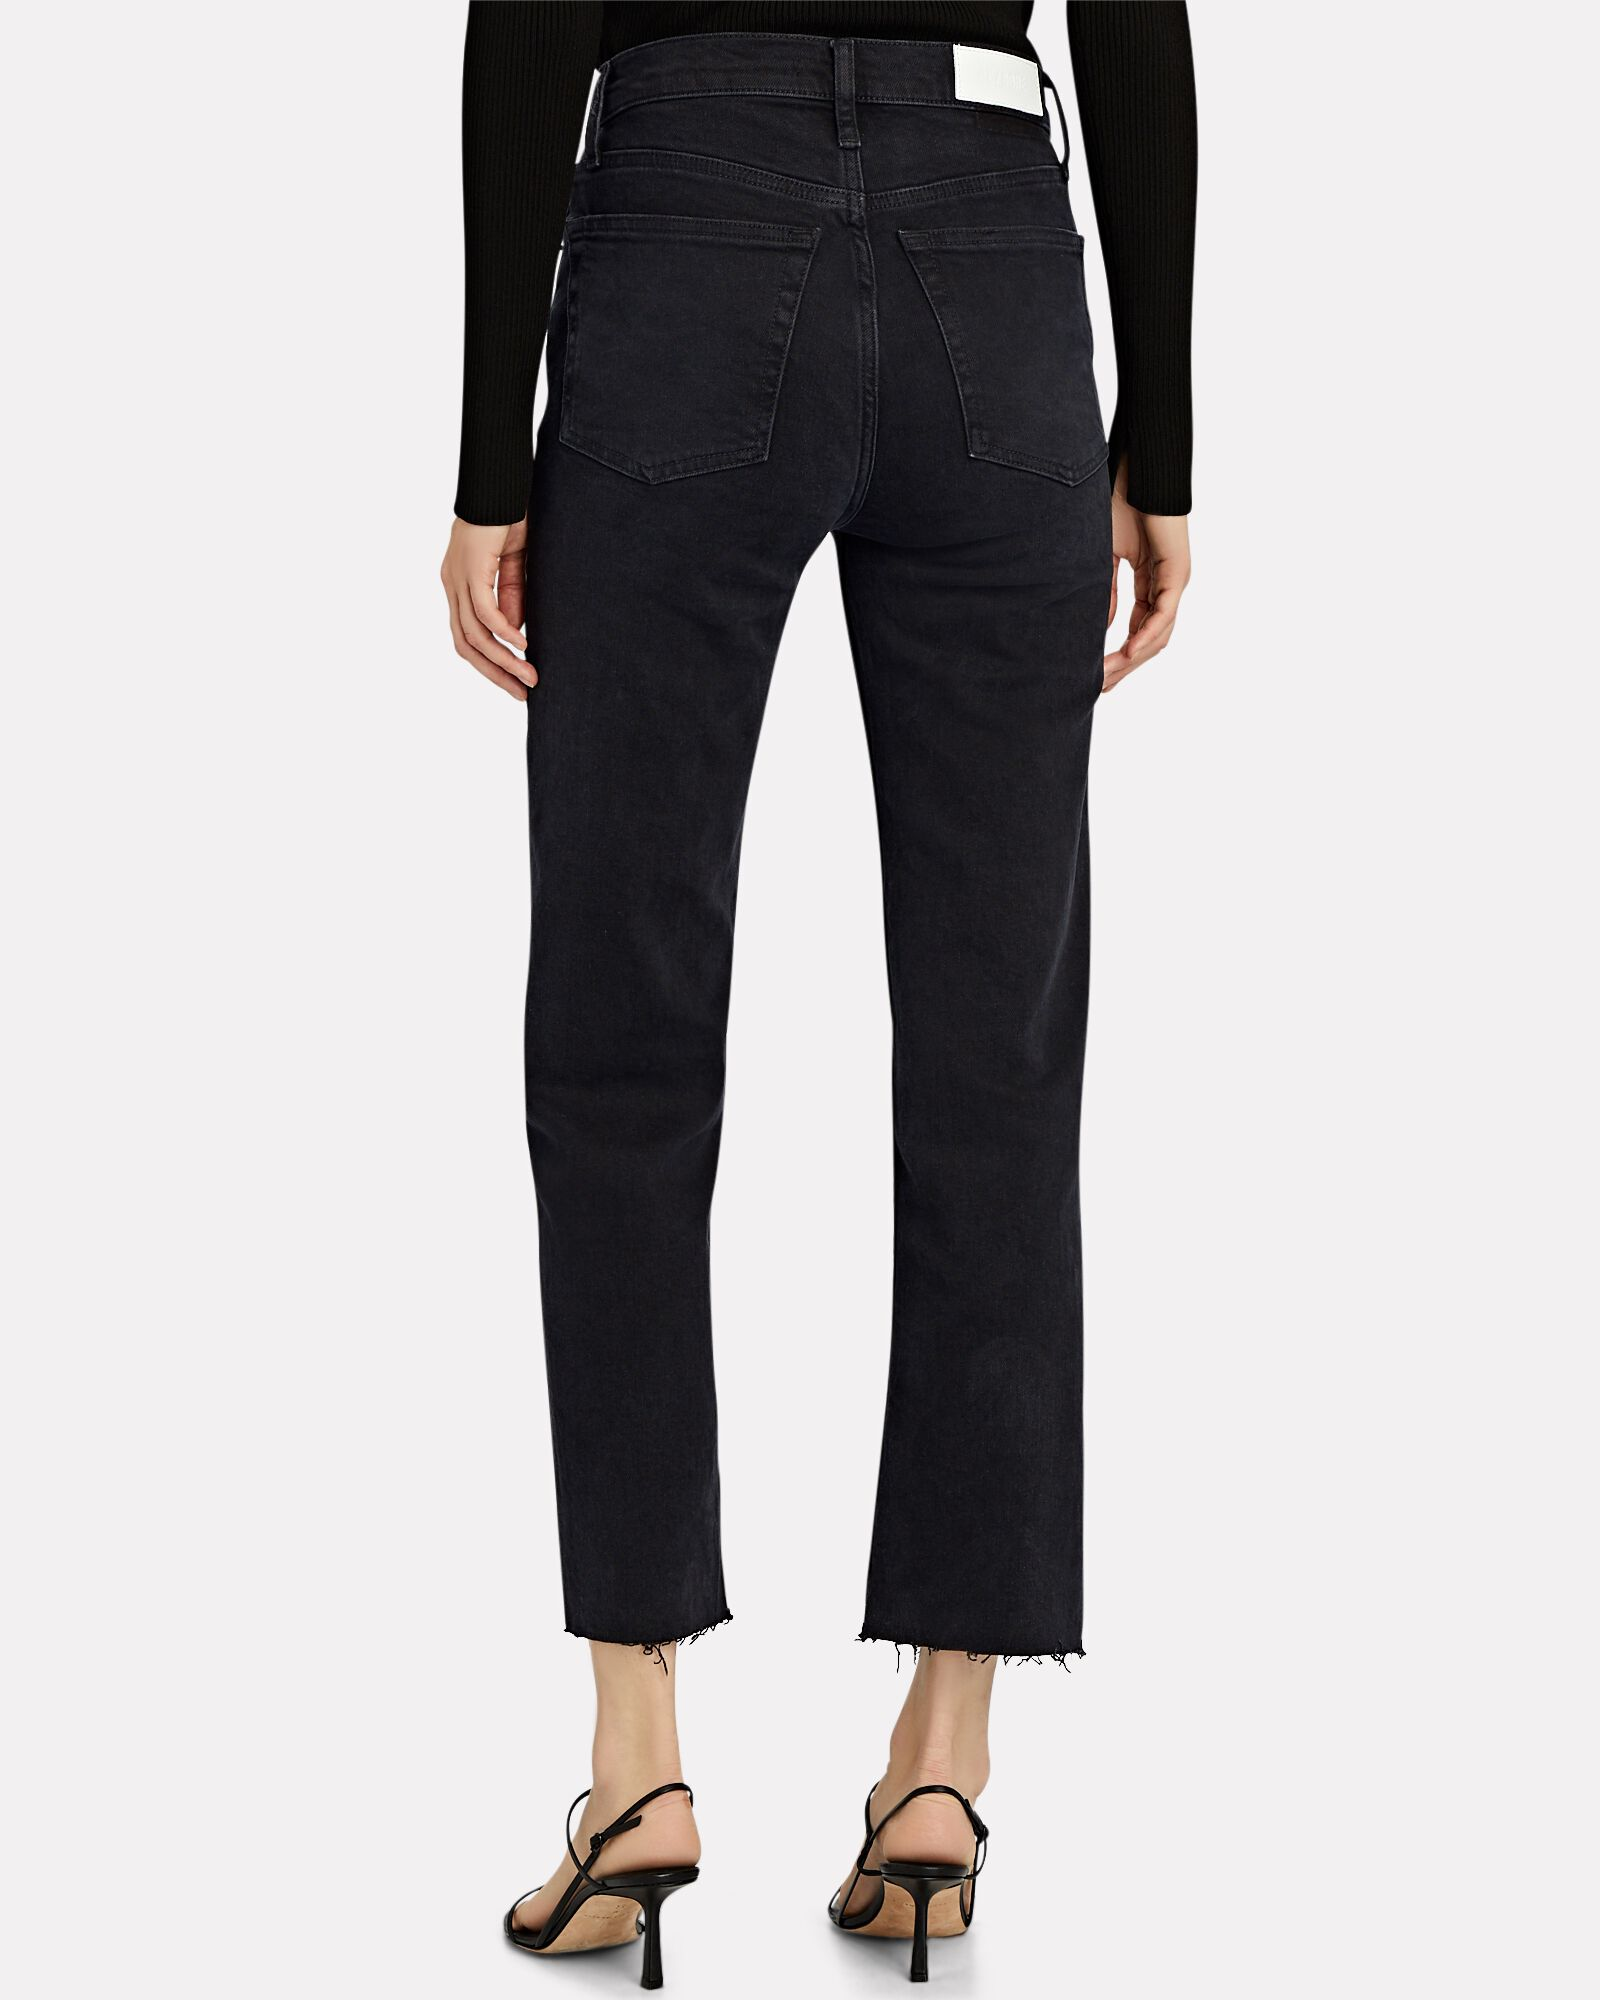 70s High-Rise Stove Pipe Jeans, FADED BLACK 85, hi-res